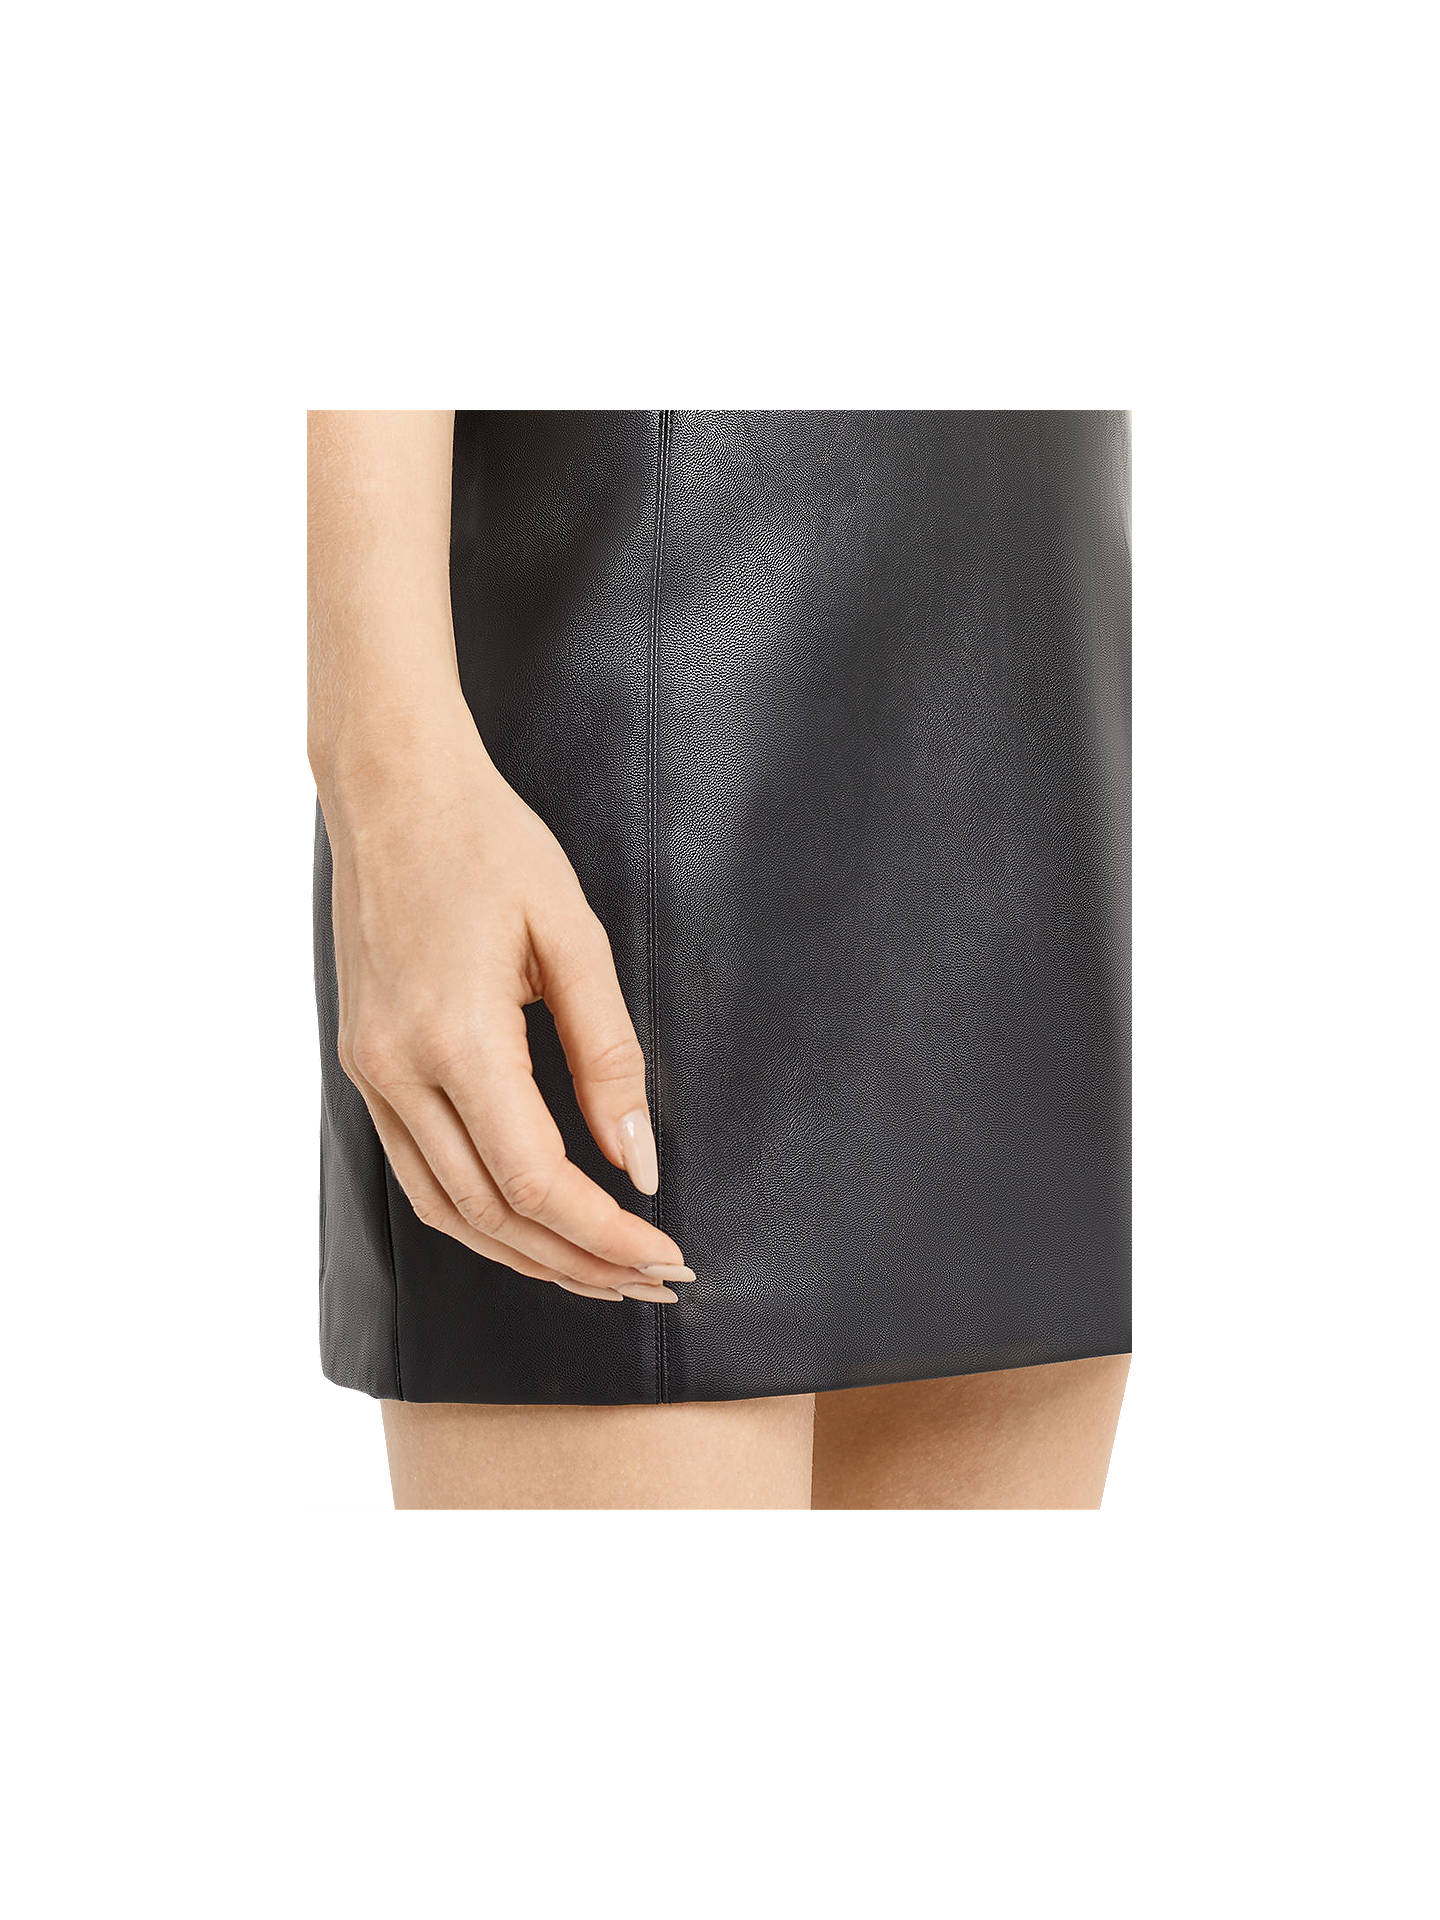 6ae87532a ... Buy Oasis Faux Leather Seamed Mini Skirt, Black, 8 Online at  johnlewis.com ...